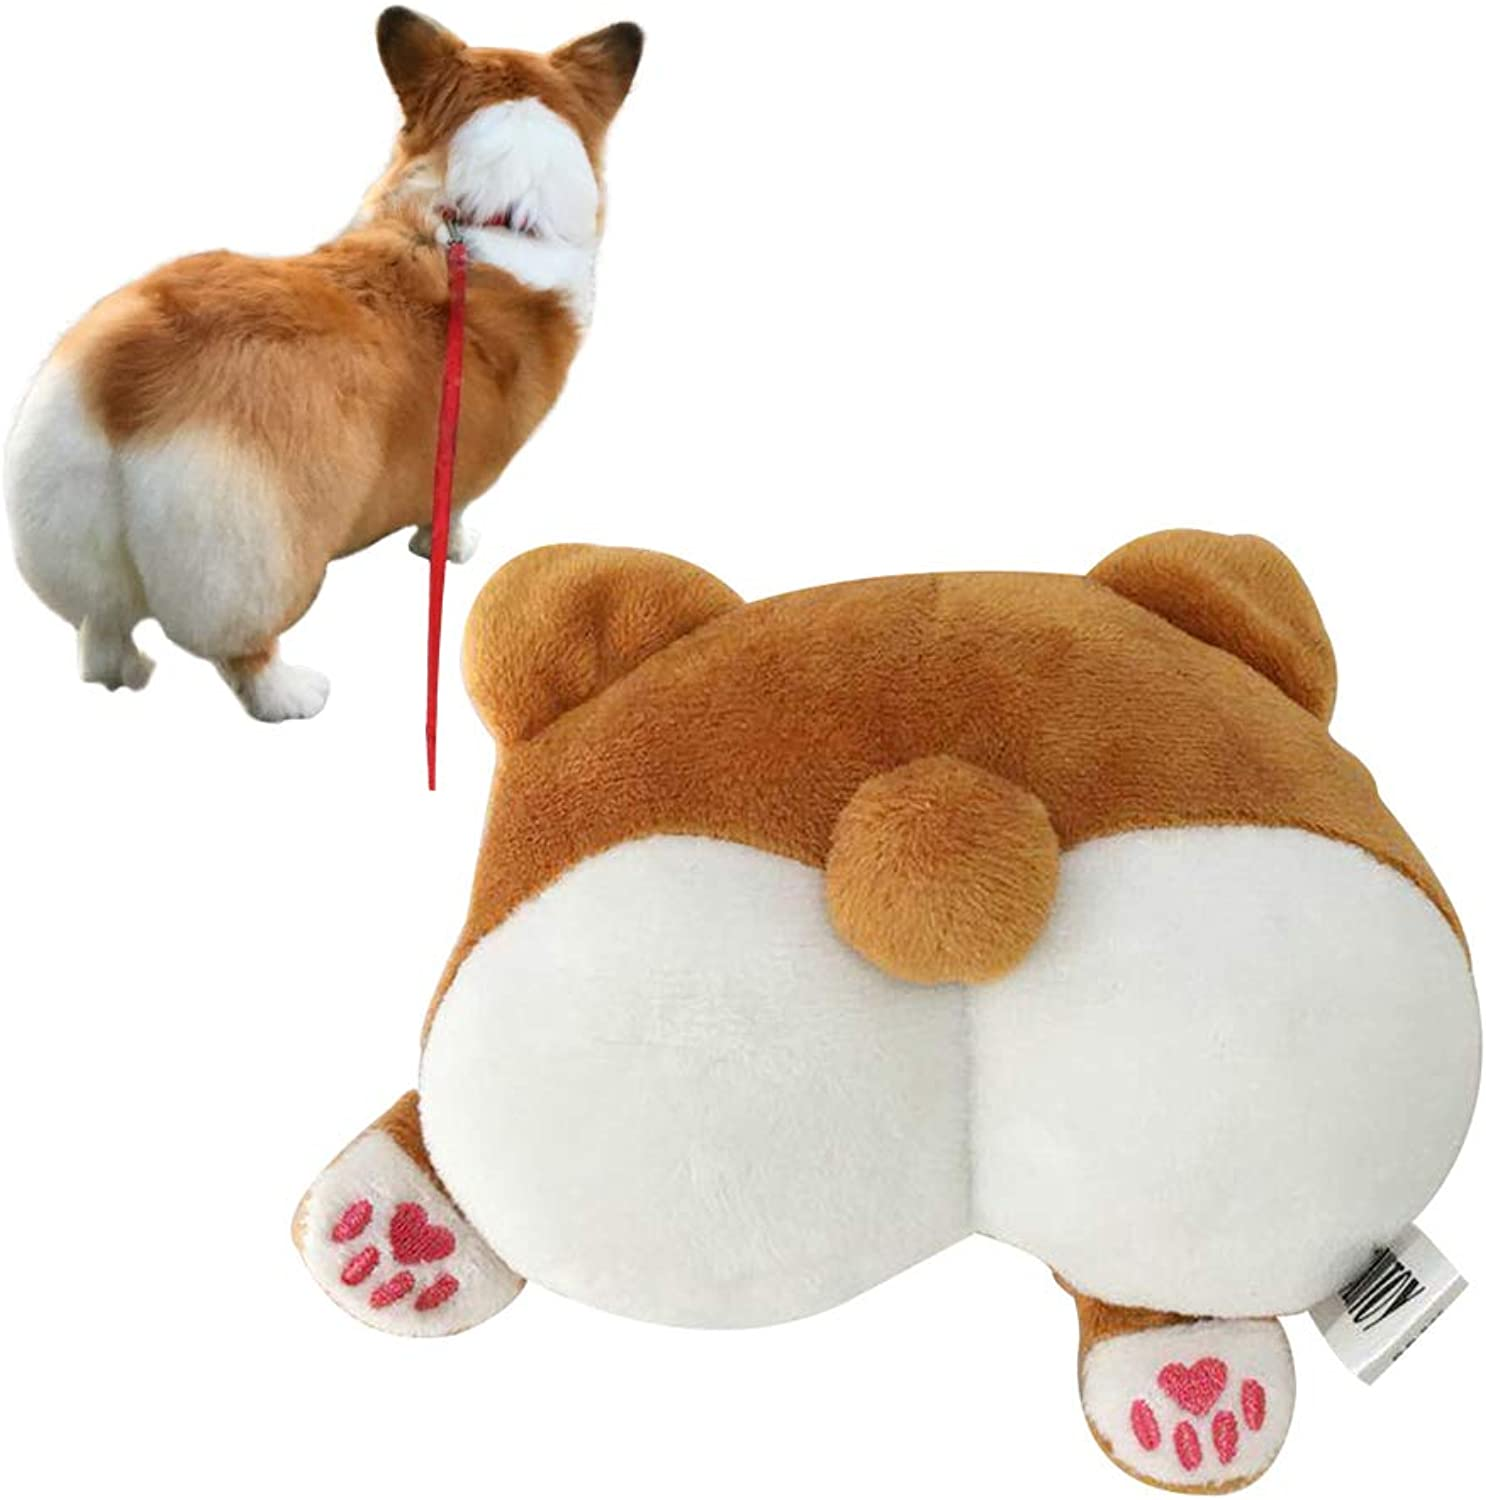 ROZKITCH Pet Dog Toys Corgi Cute Butt Shaped Plush Toy Squeaky Dog Toy, Stuffed Plush Puppy Dog Chew Toy for Small Medium Dogs